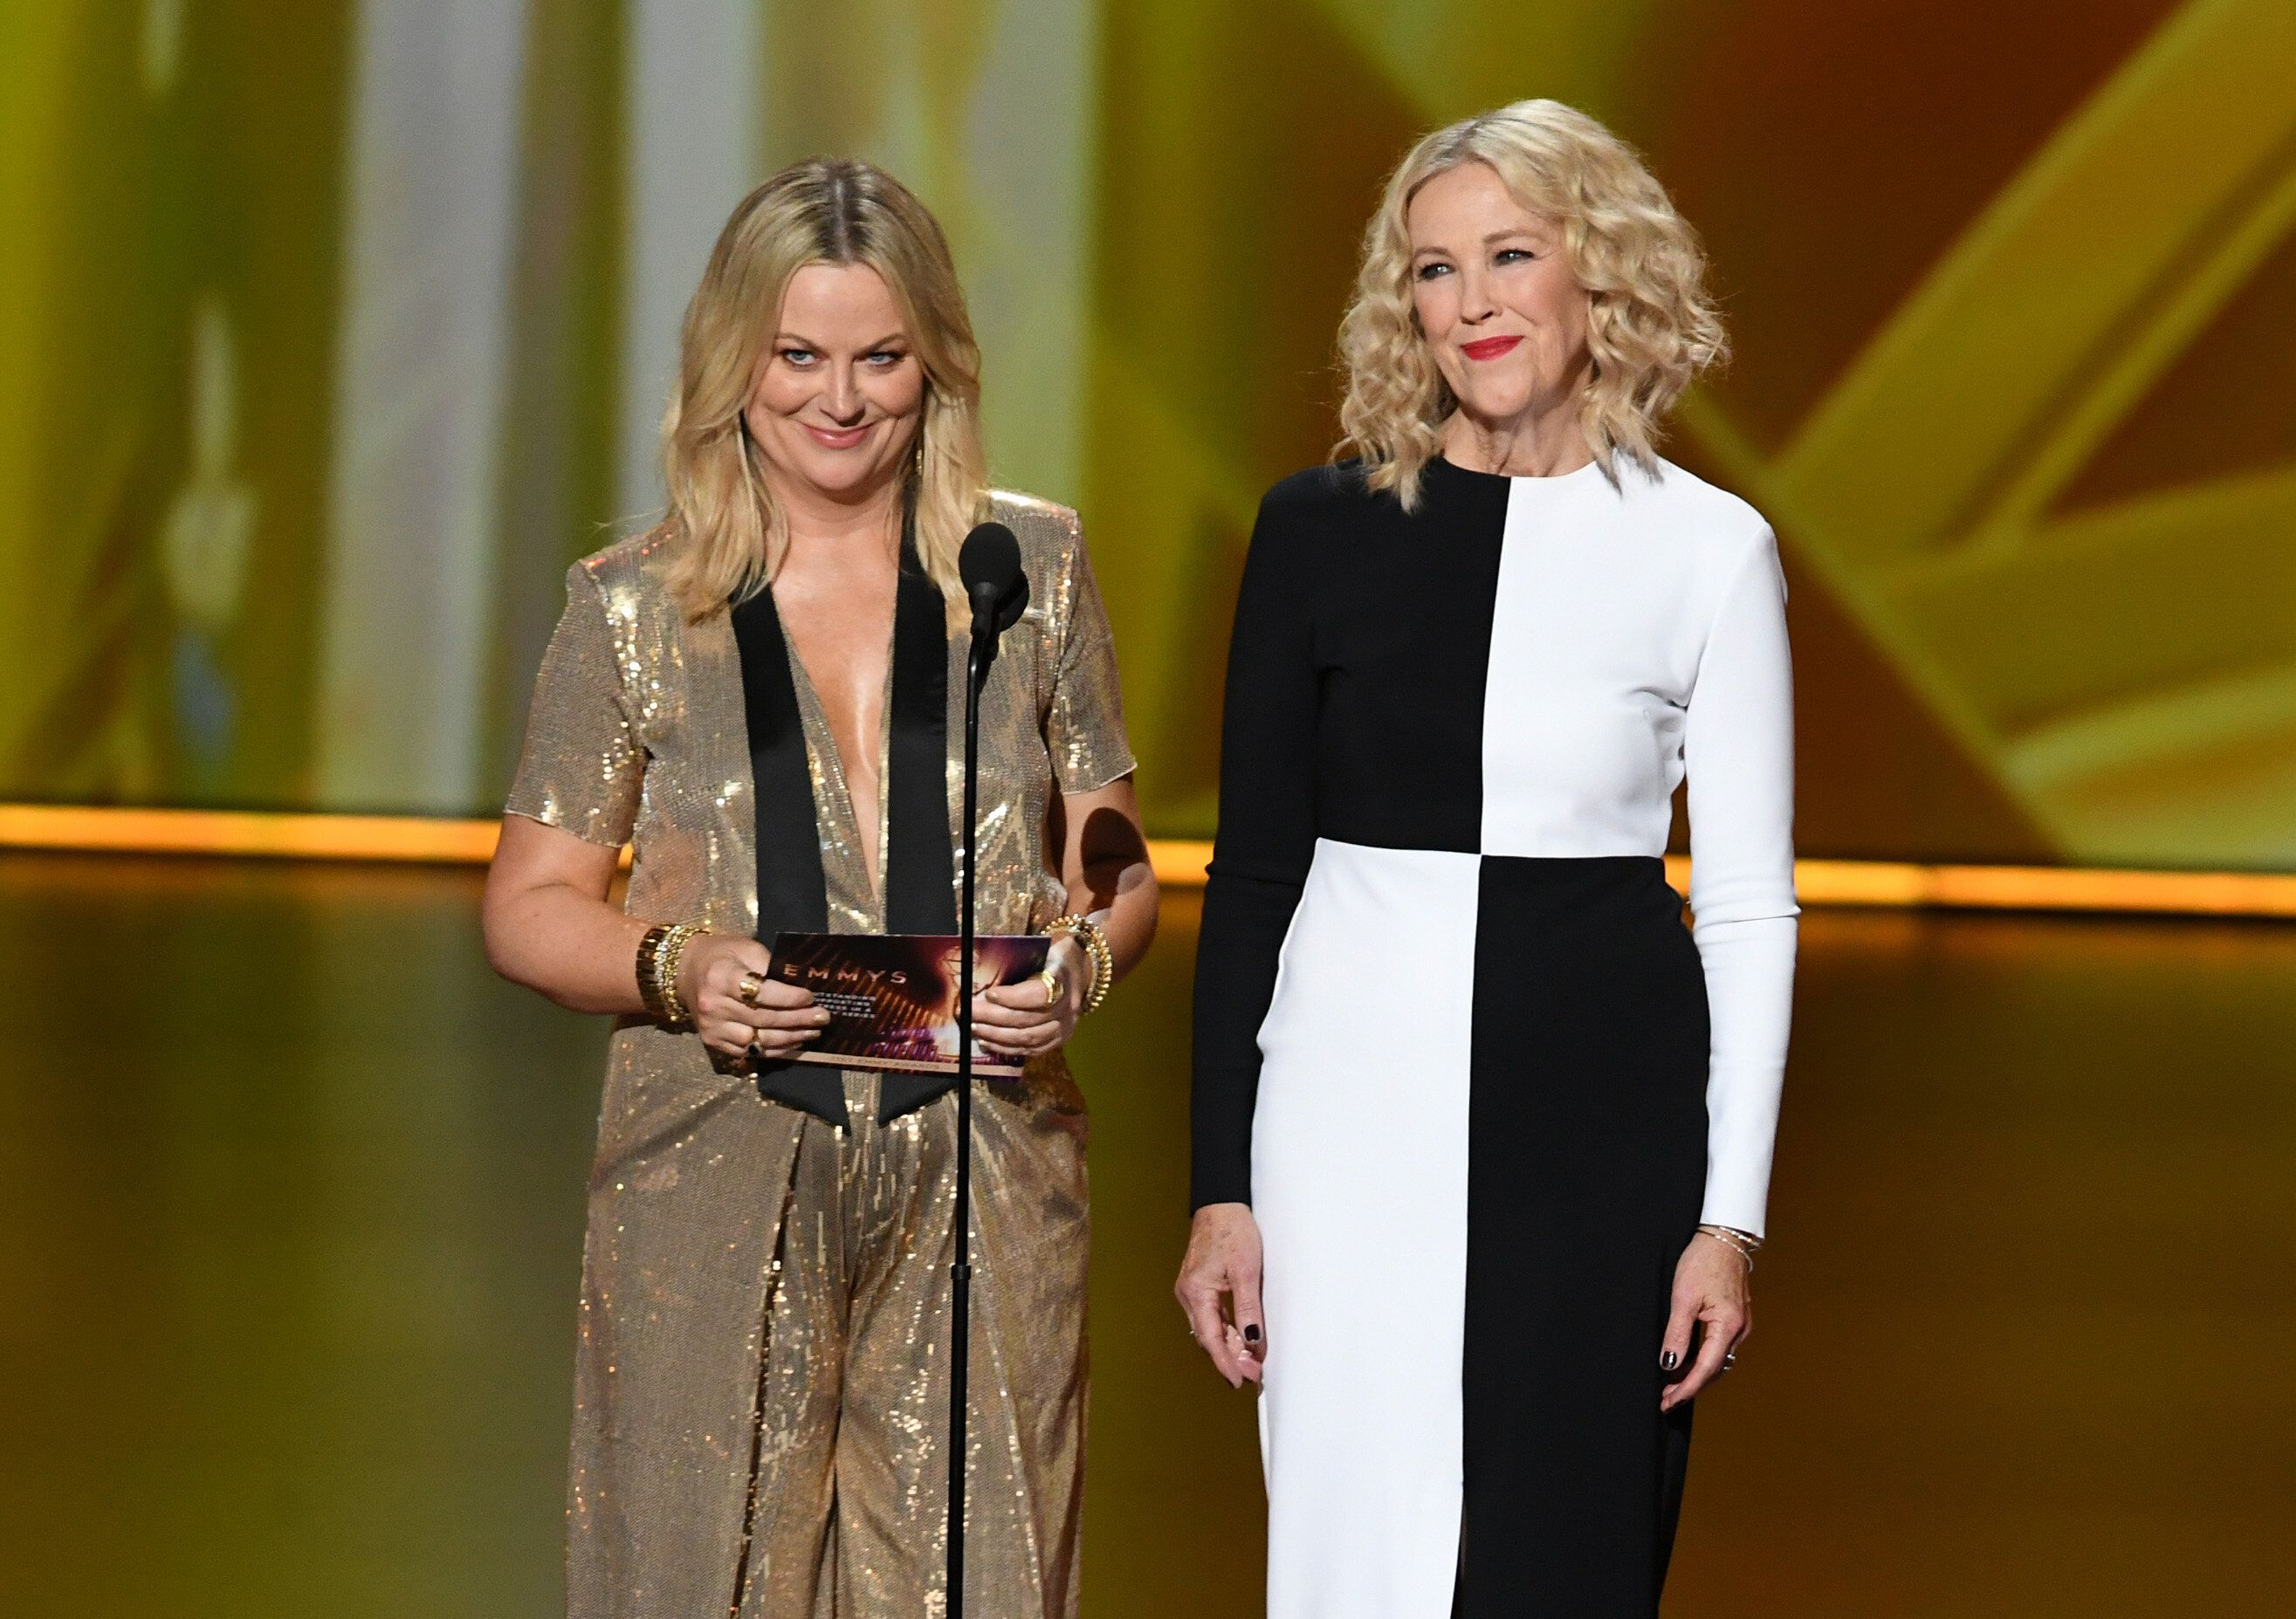 Amy Poehler and Catherine O'Hara speak onstage during the 71st Emmy Awards at Microsoft Theater on September 22, 2019 in Los